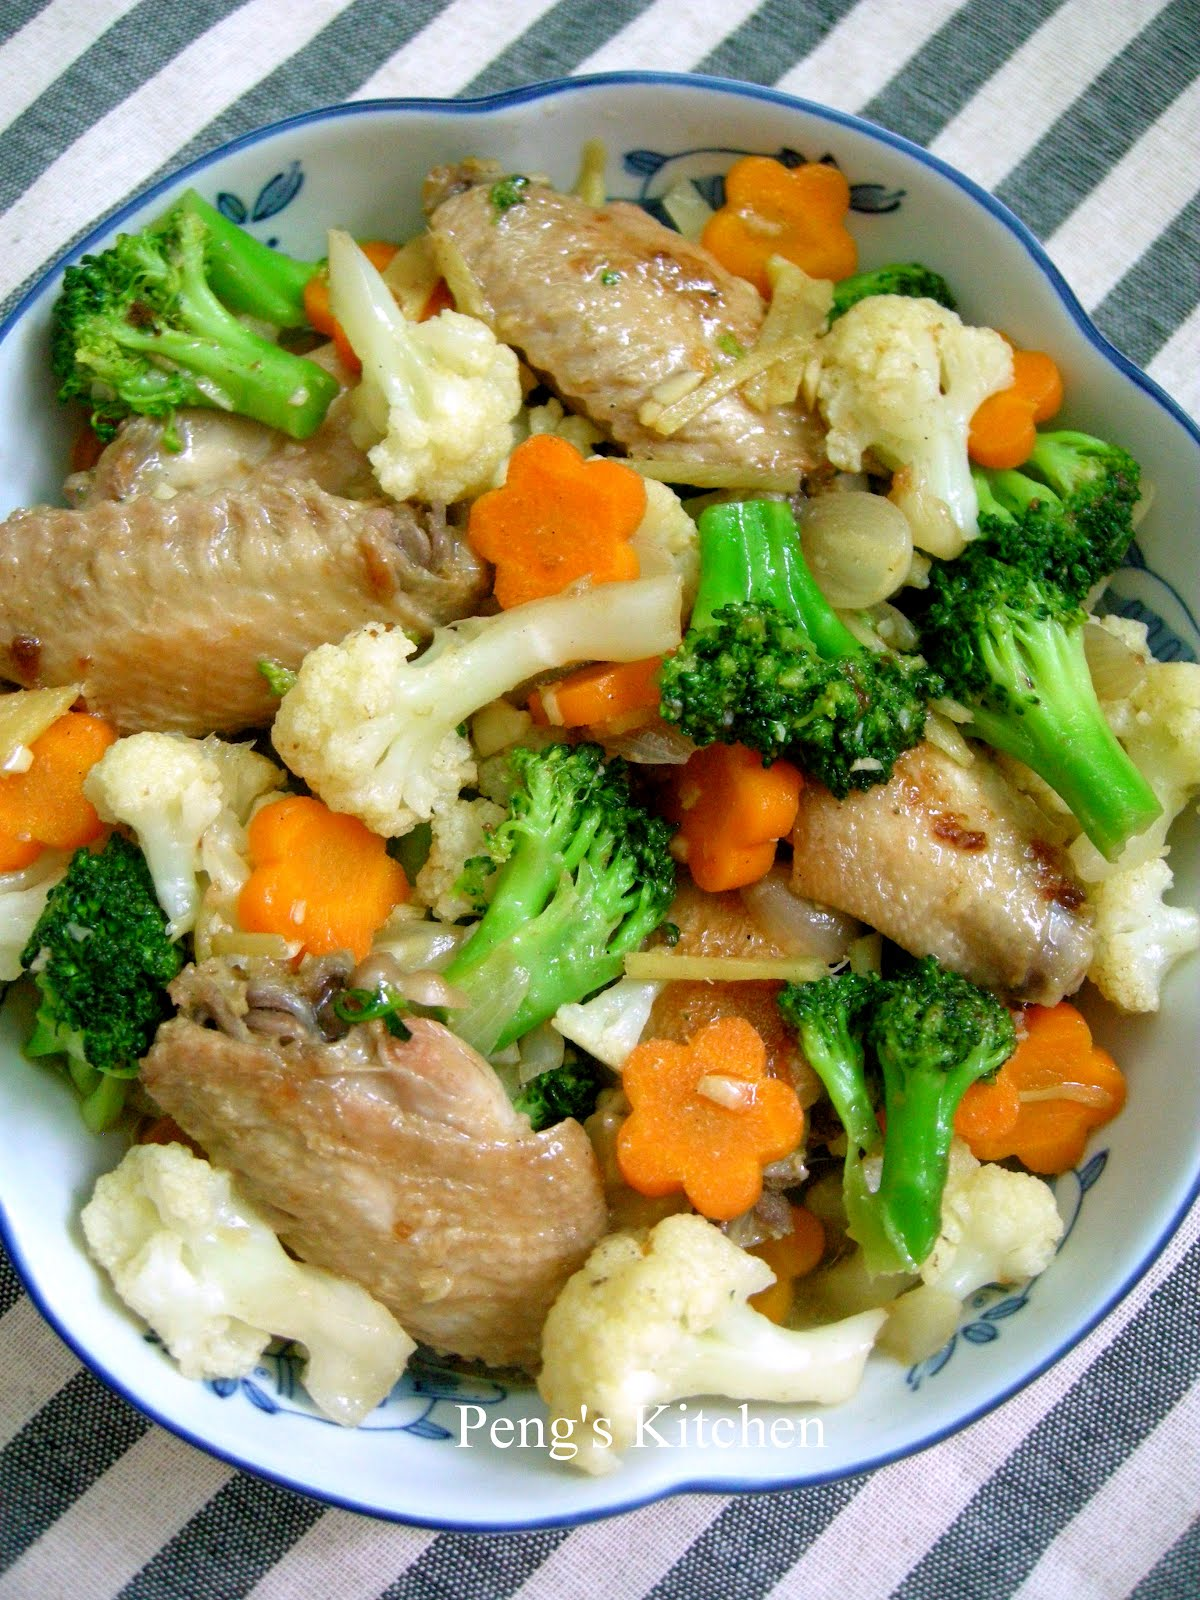 Chicken Stir Fry With Broccoli And Carrots